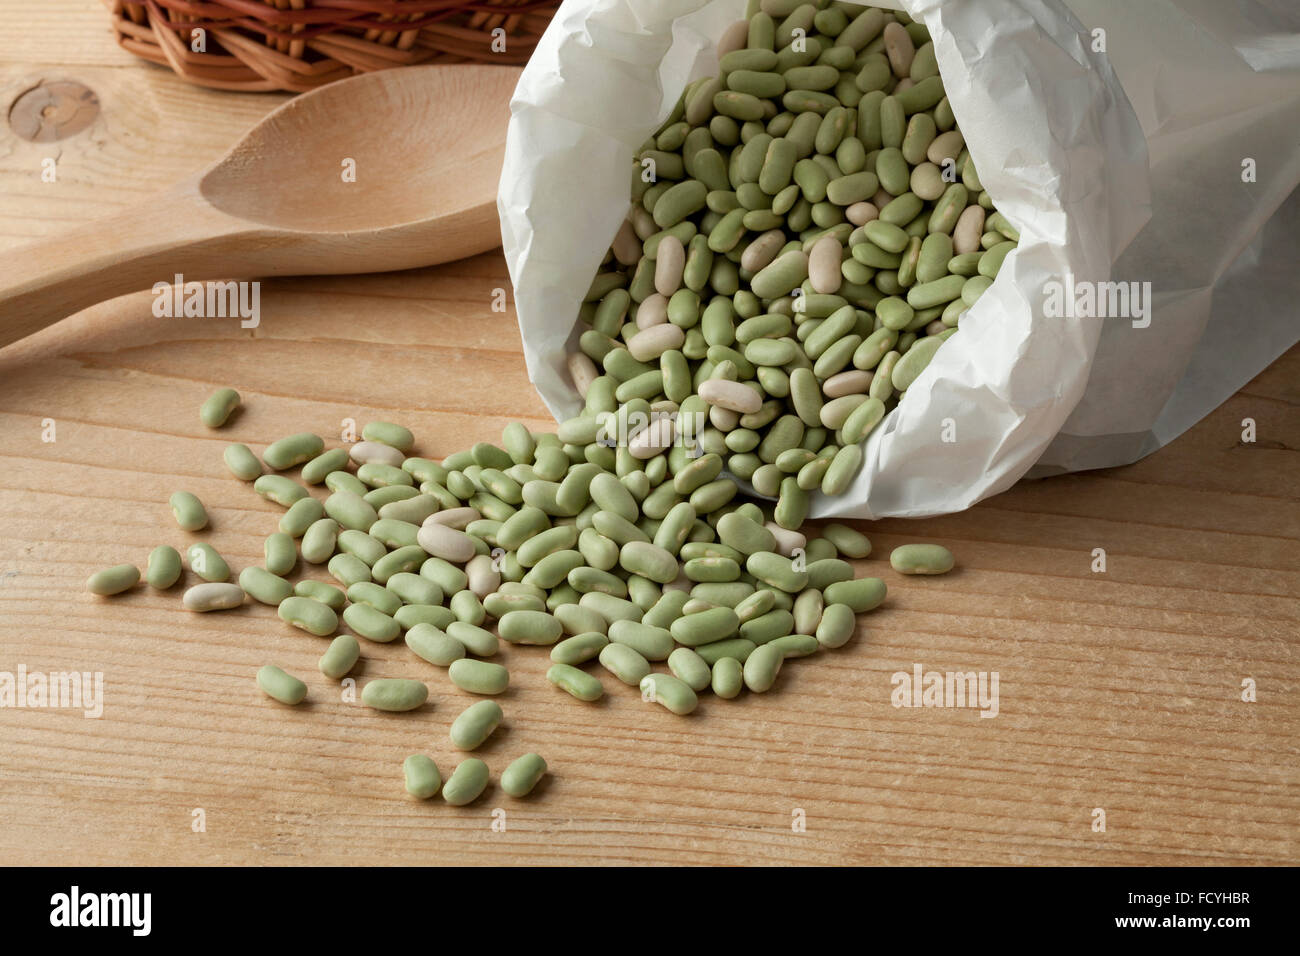 Paper bag with  French flageolets beans - Stock Image